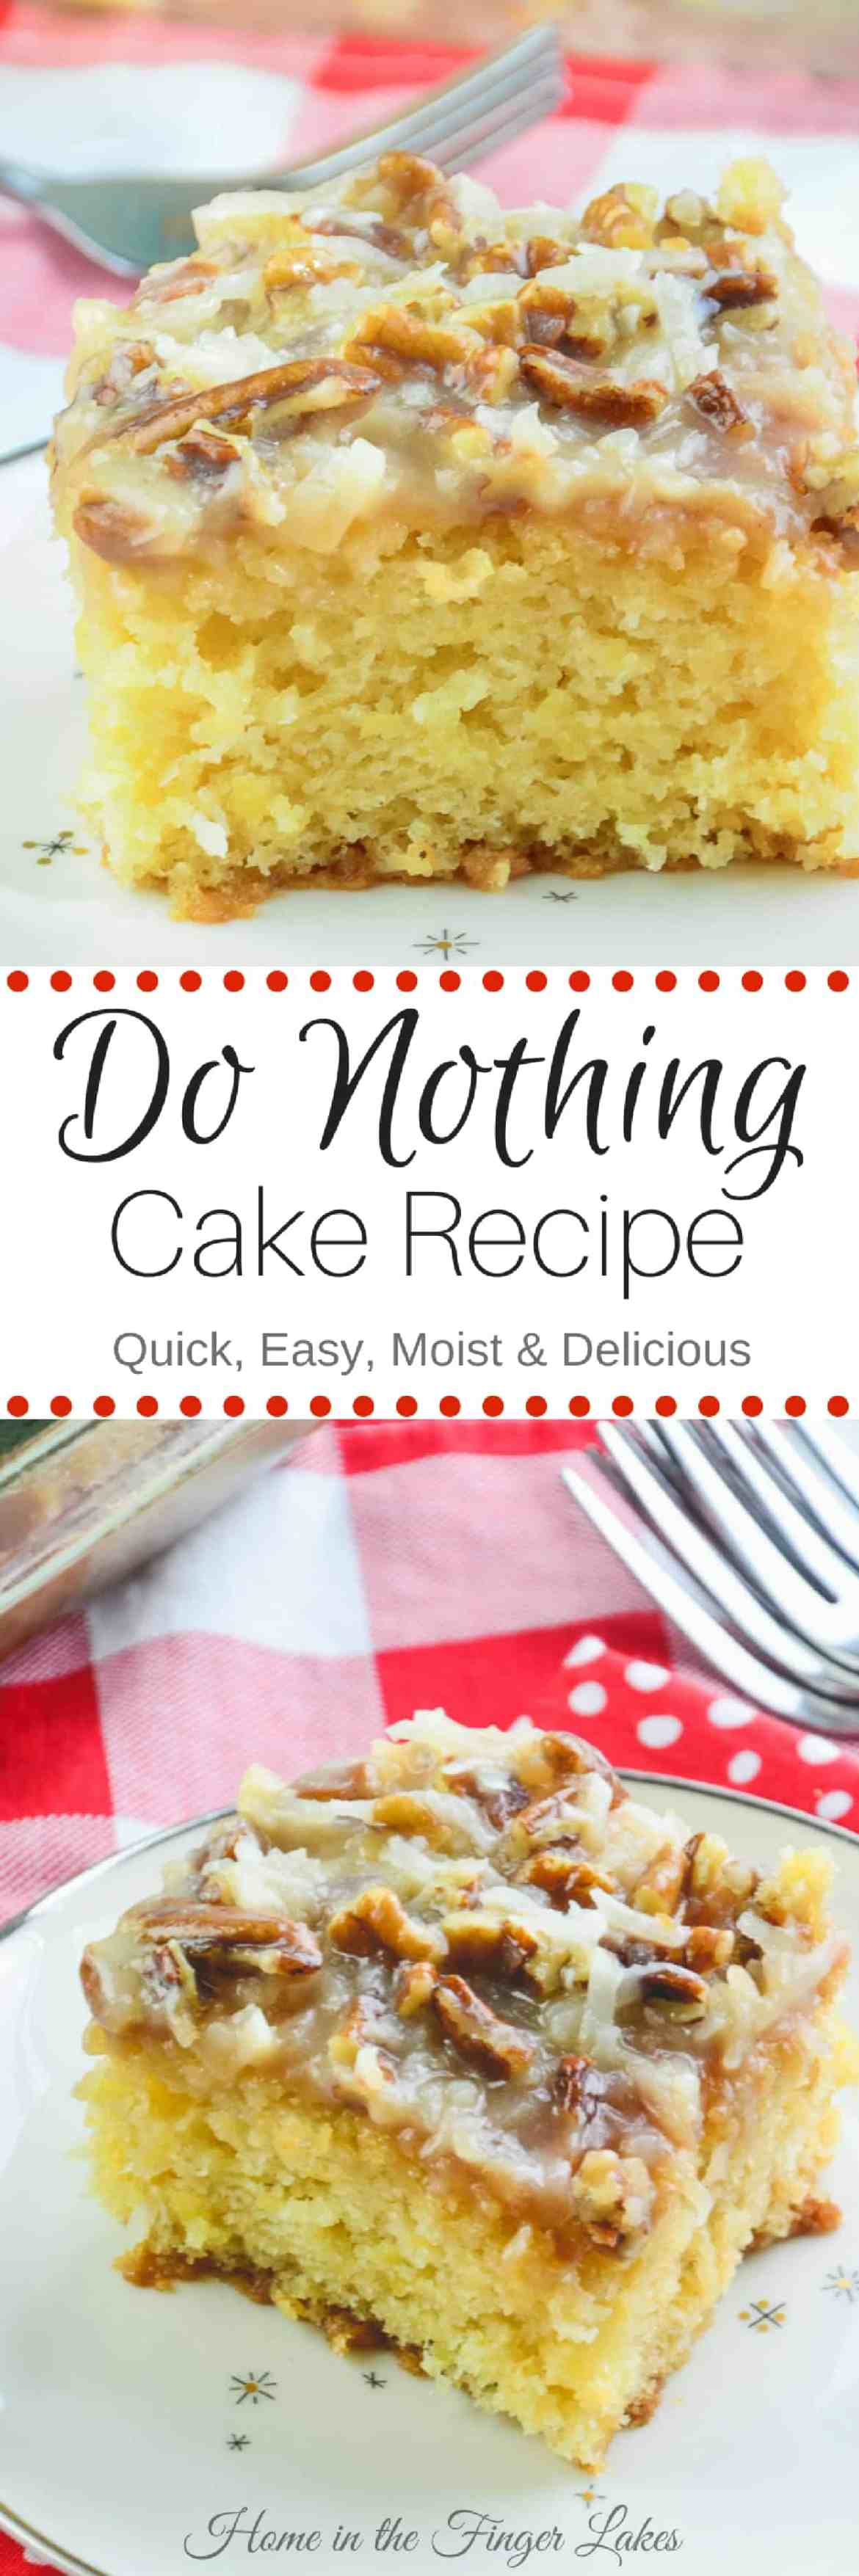 Looking for a quick and easy dessert to feed a crowd? This is your recipe! Do Nothing Cake is made from scratch with delicious results every time.